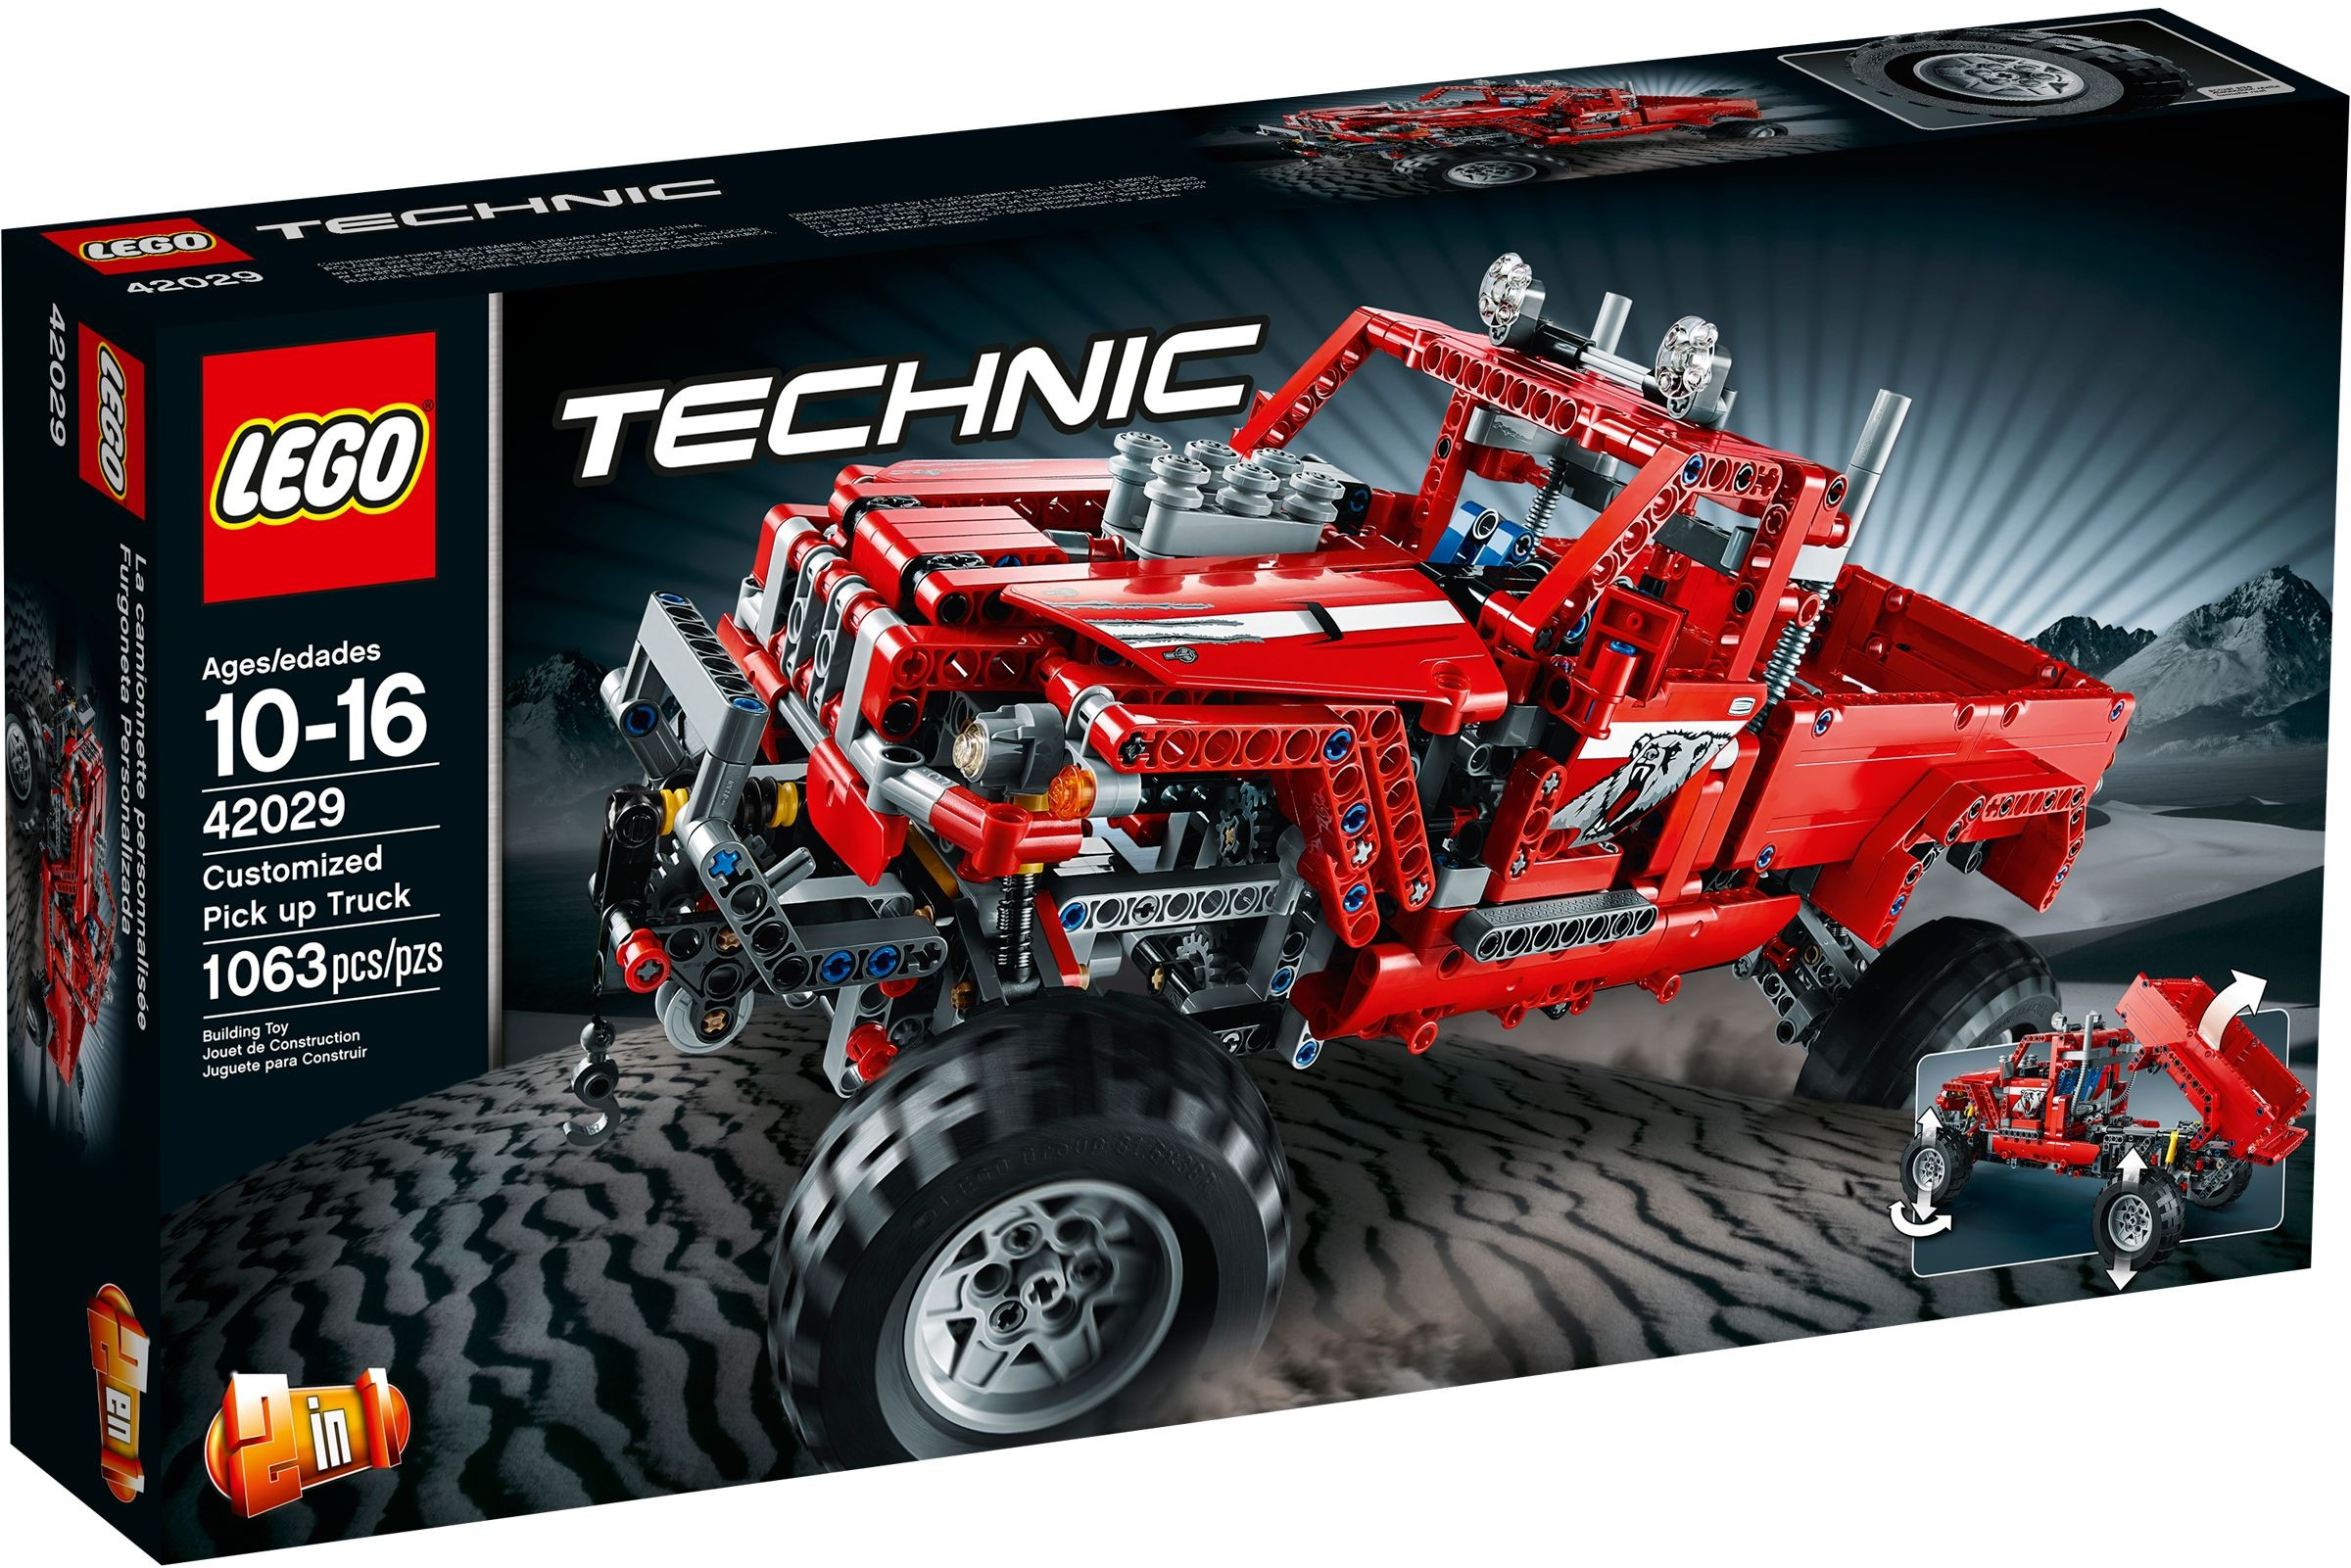 LEGO Technic Sets: 42029 Customized Pick-Up Truck NEW